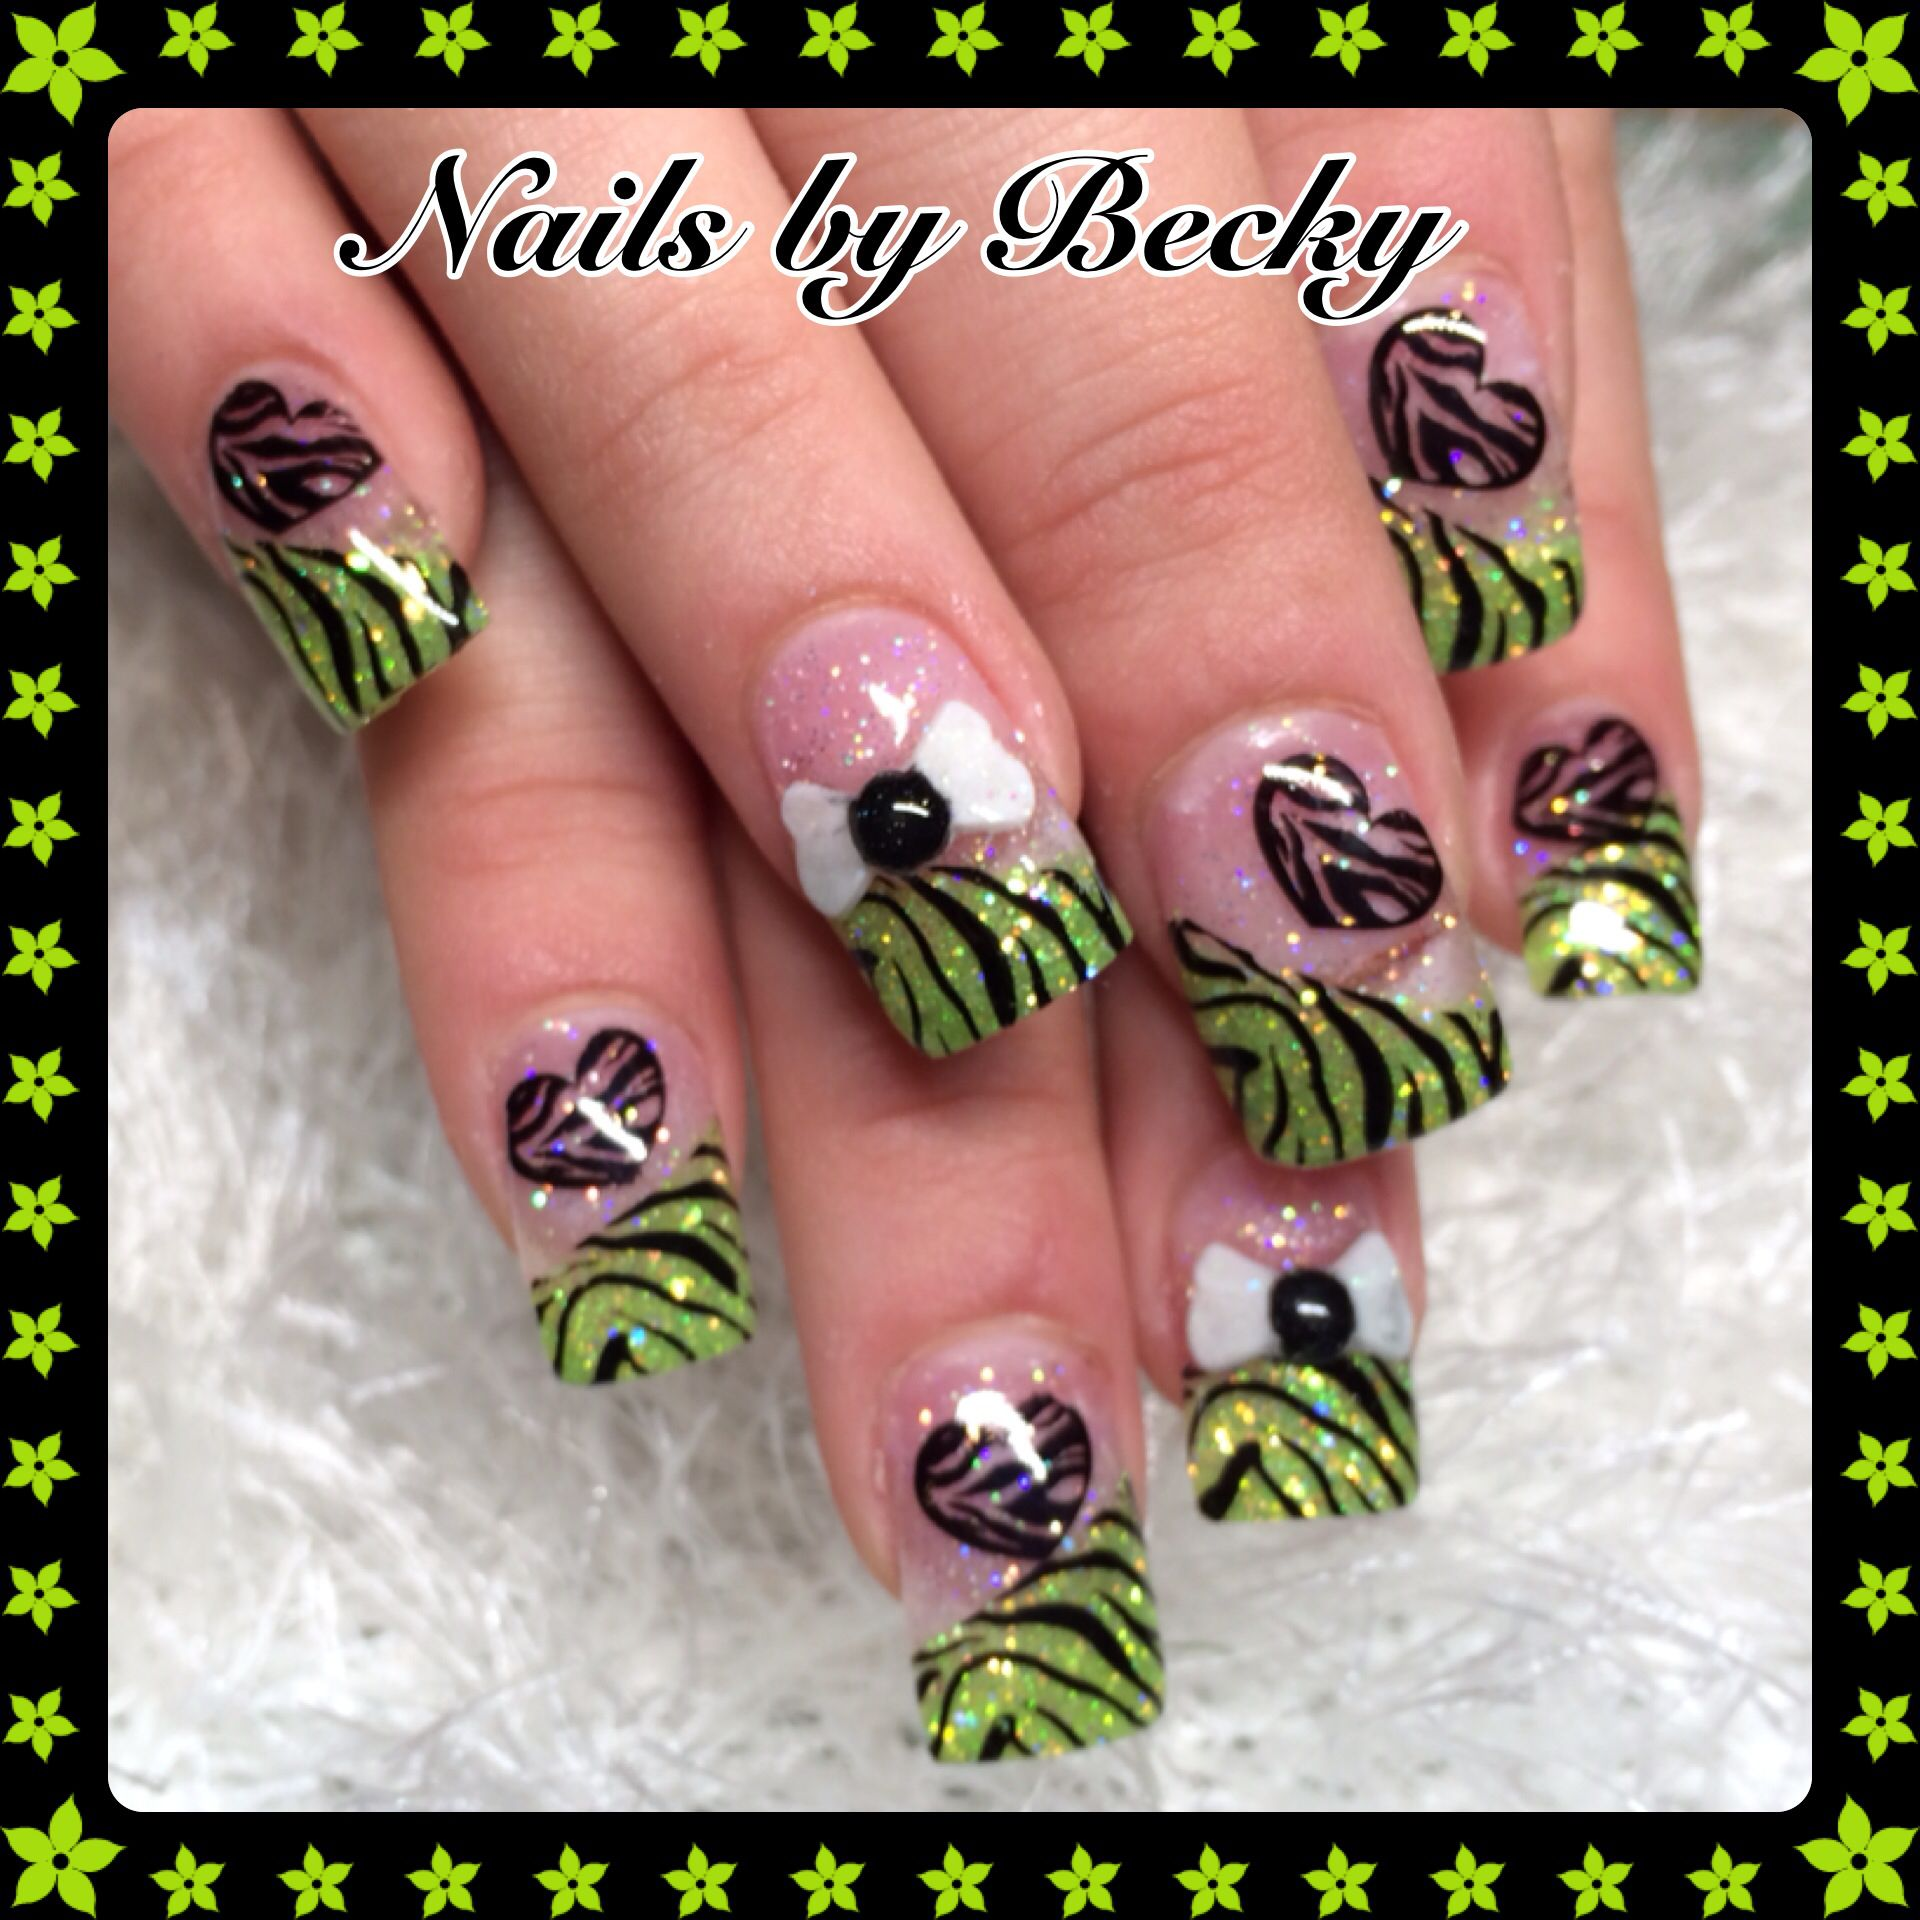 Nails-by-Becky-sparkle-glitter-green-black-zebra-hearts-bows-raised ...